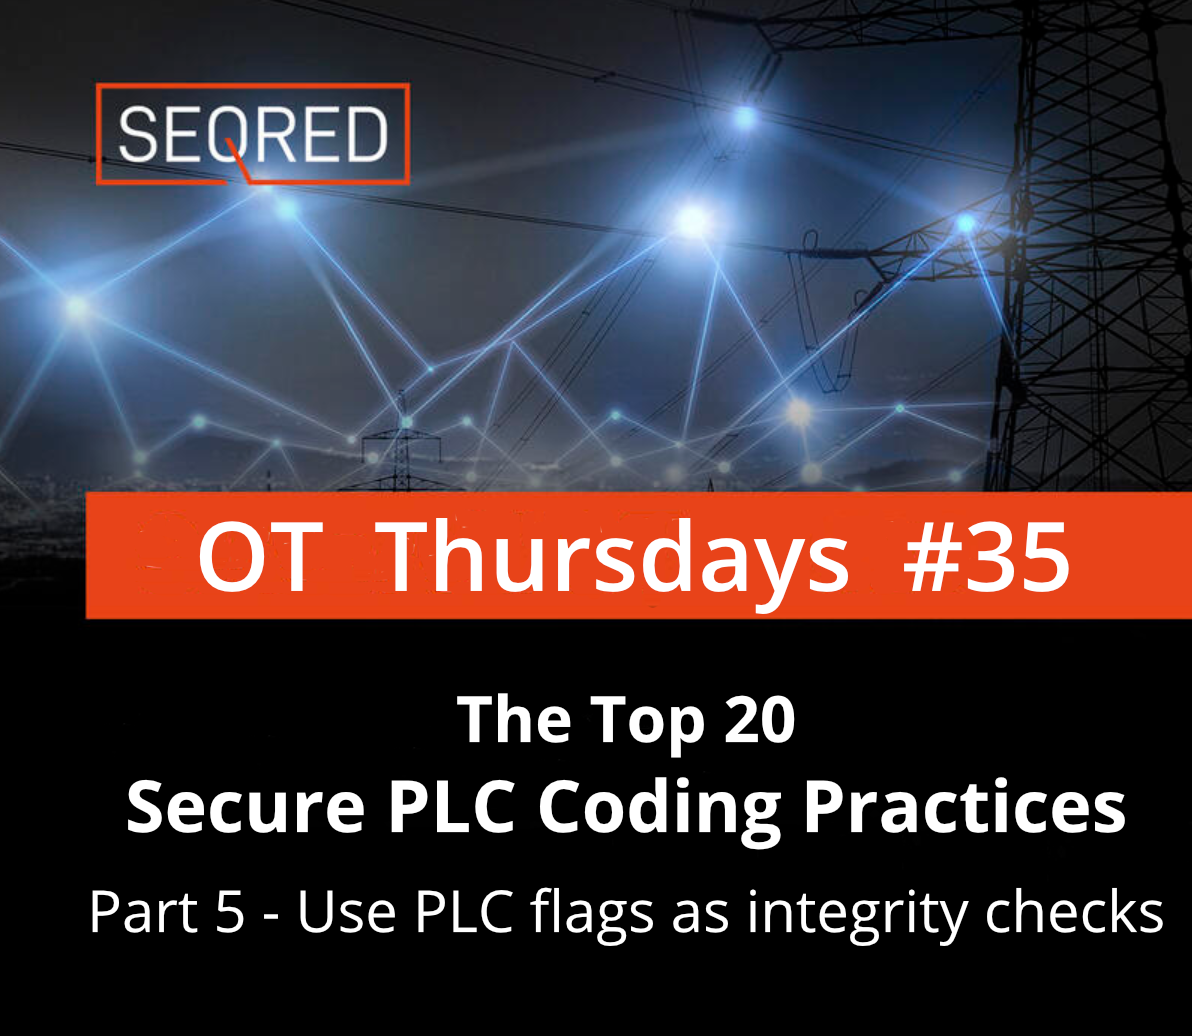 The Top 20 Secure PLC Coding Practices. Part 5 - Use PLC flags as integrity checks